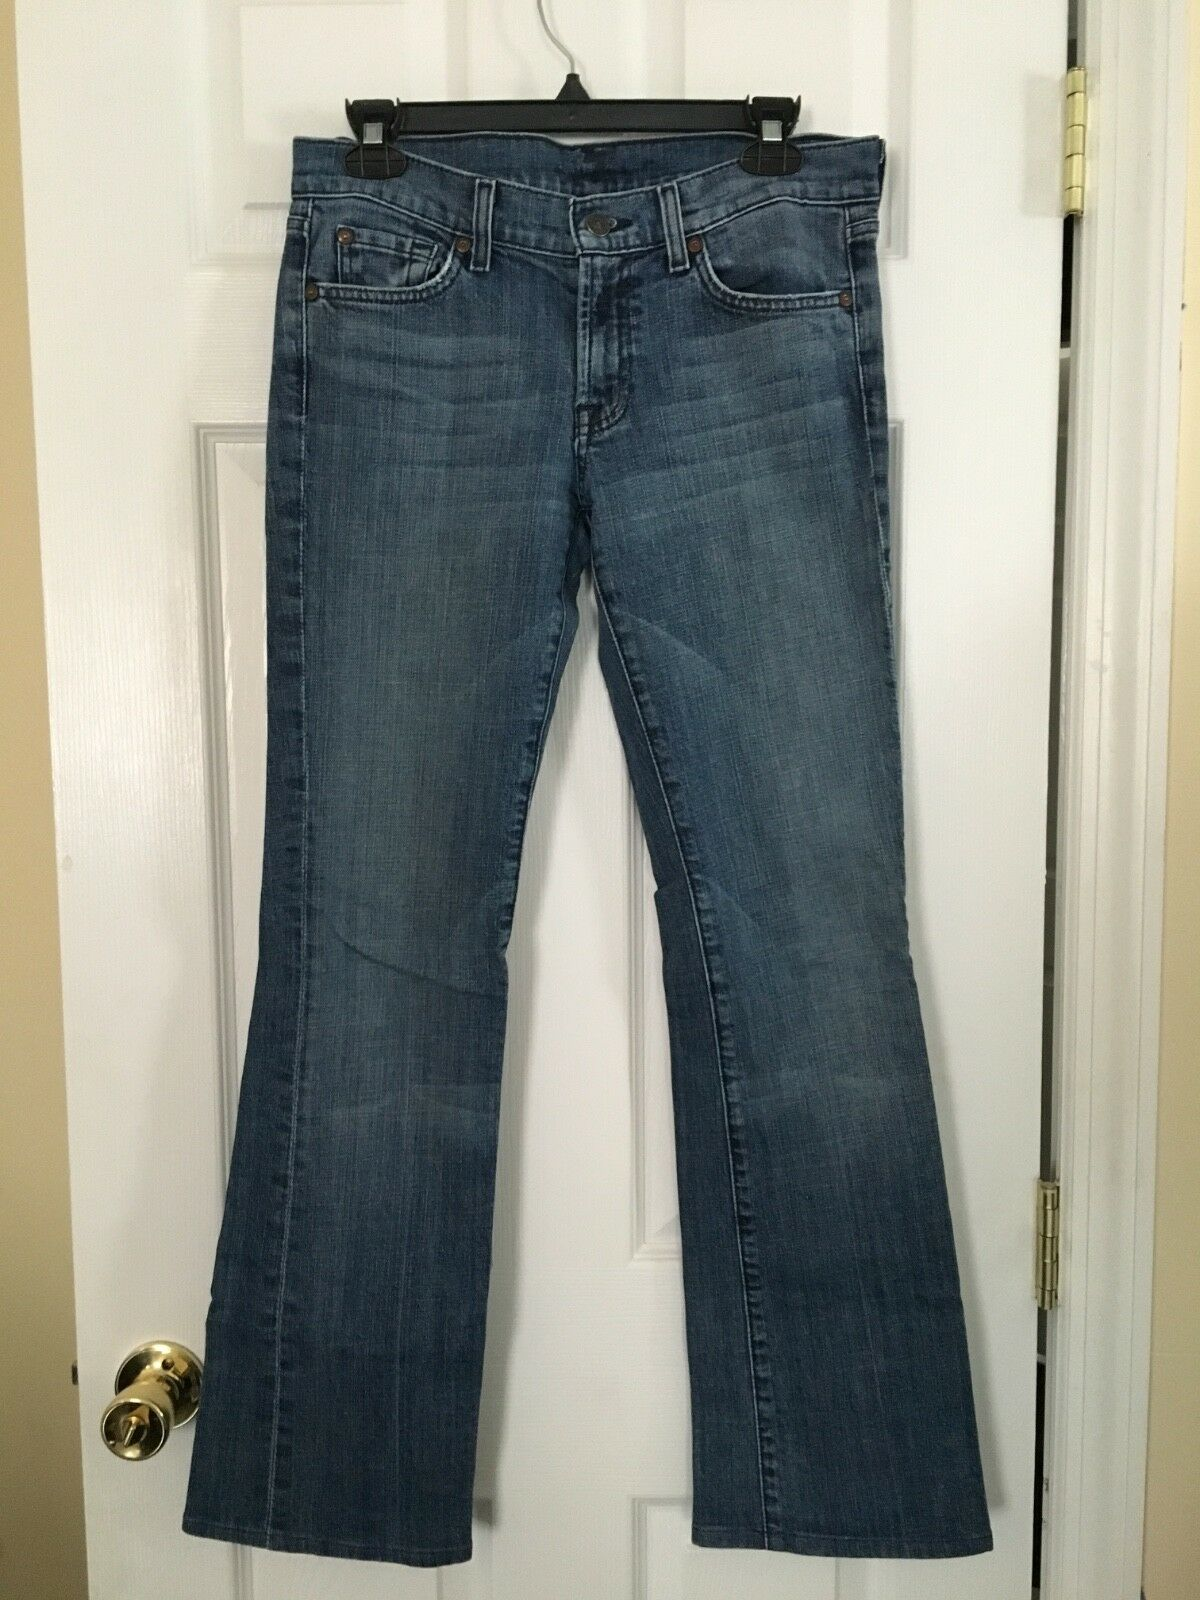 7 for all mankind womens bootcut jeans, size 28, preowned